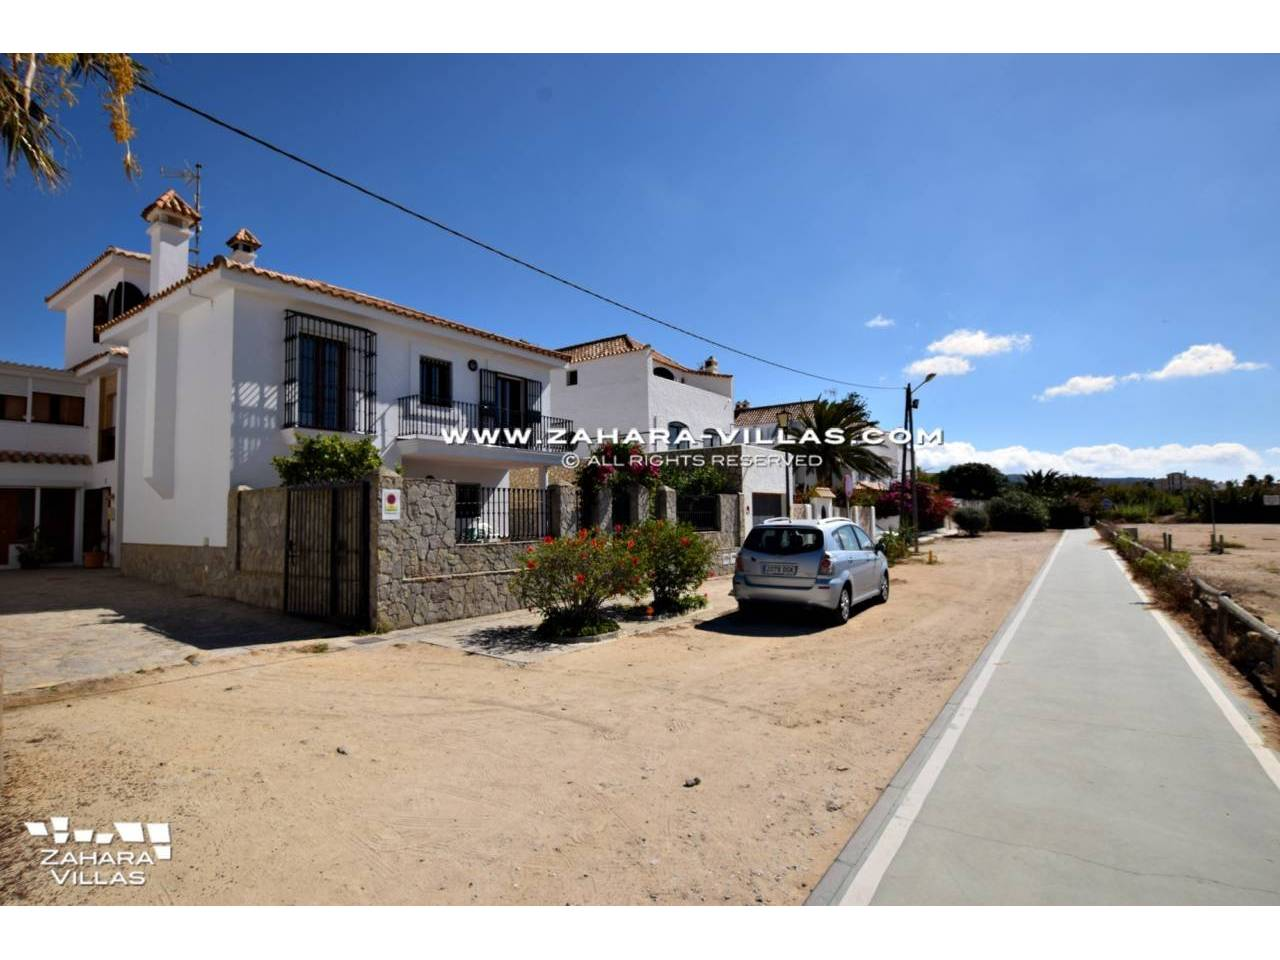 Imagen 3 de House for sale on the front beach, with sea views in Zahara de los Atunes